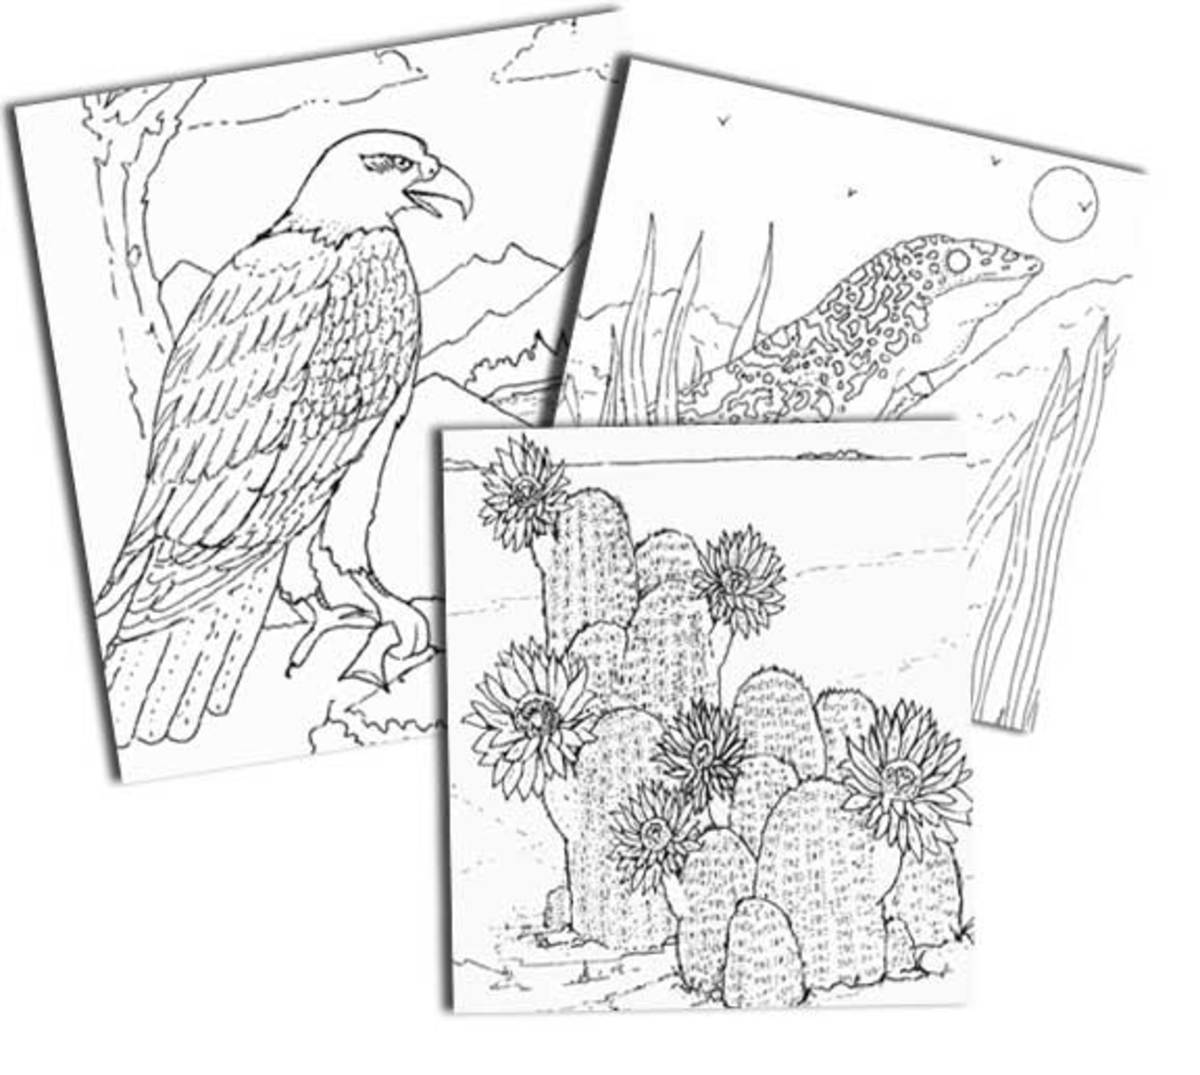 Earth day coloring activities hubpages for Endangered species coloring pages